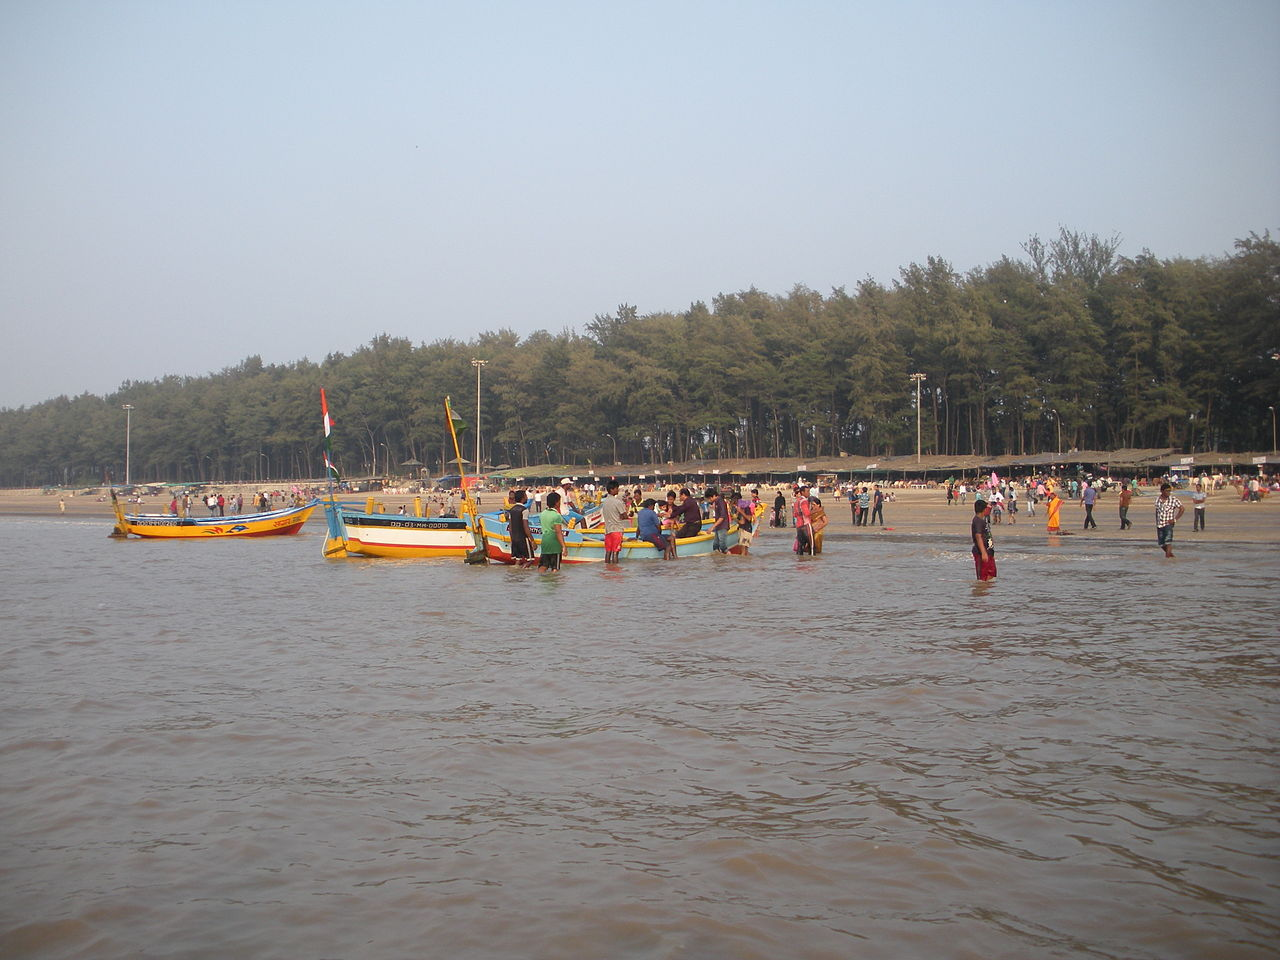 Jampore Beach - Top-Rated Sight-Seeing Destination To Visit in Vapi